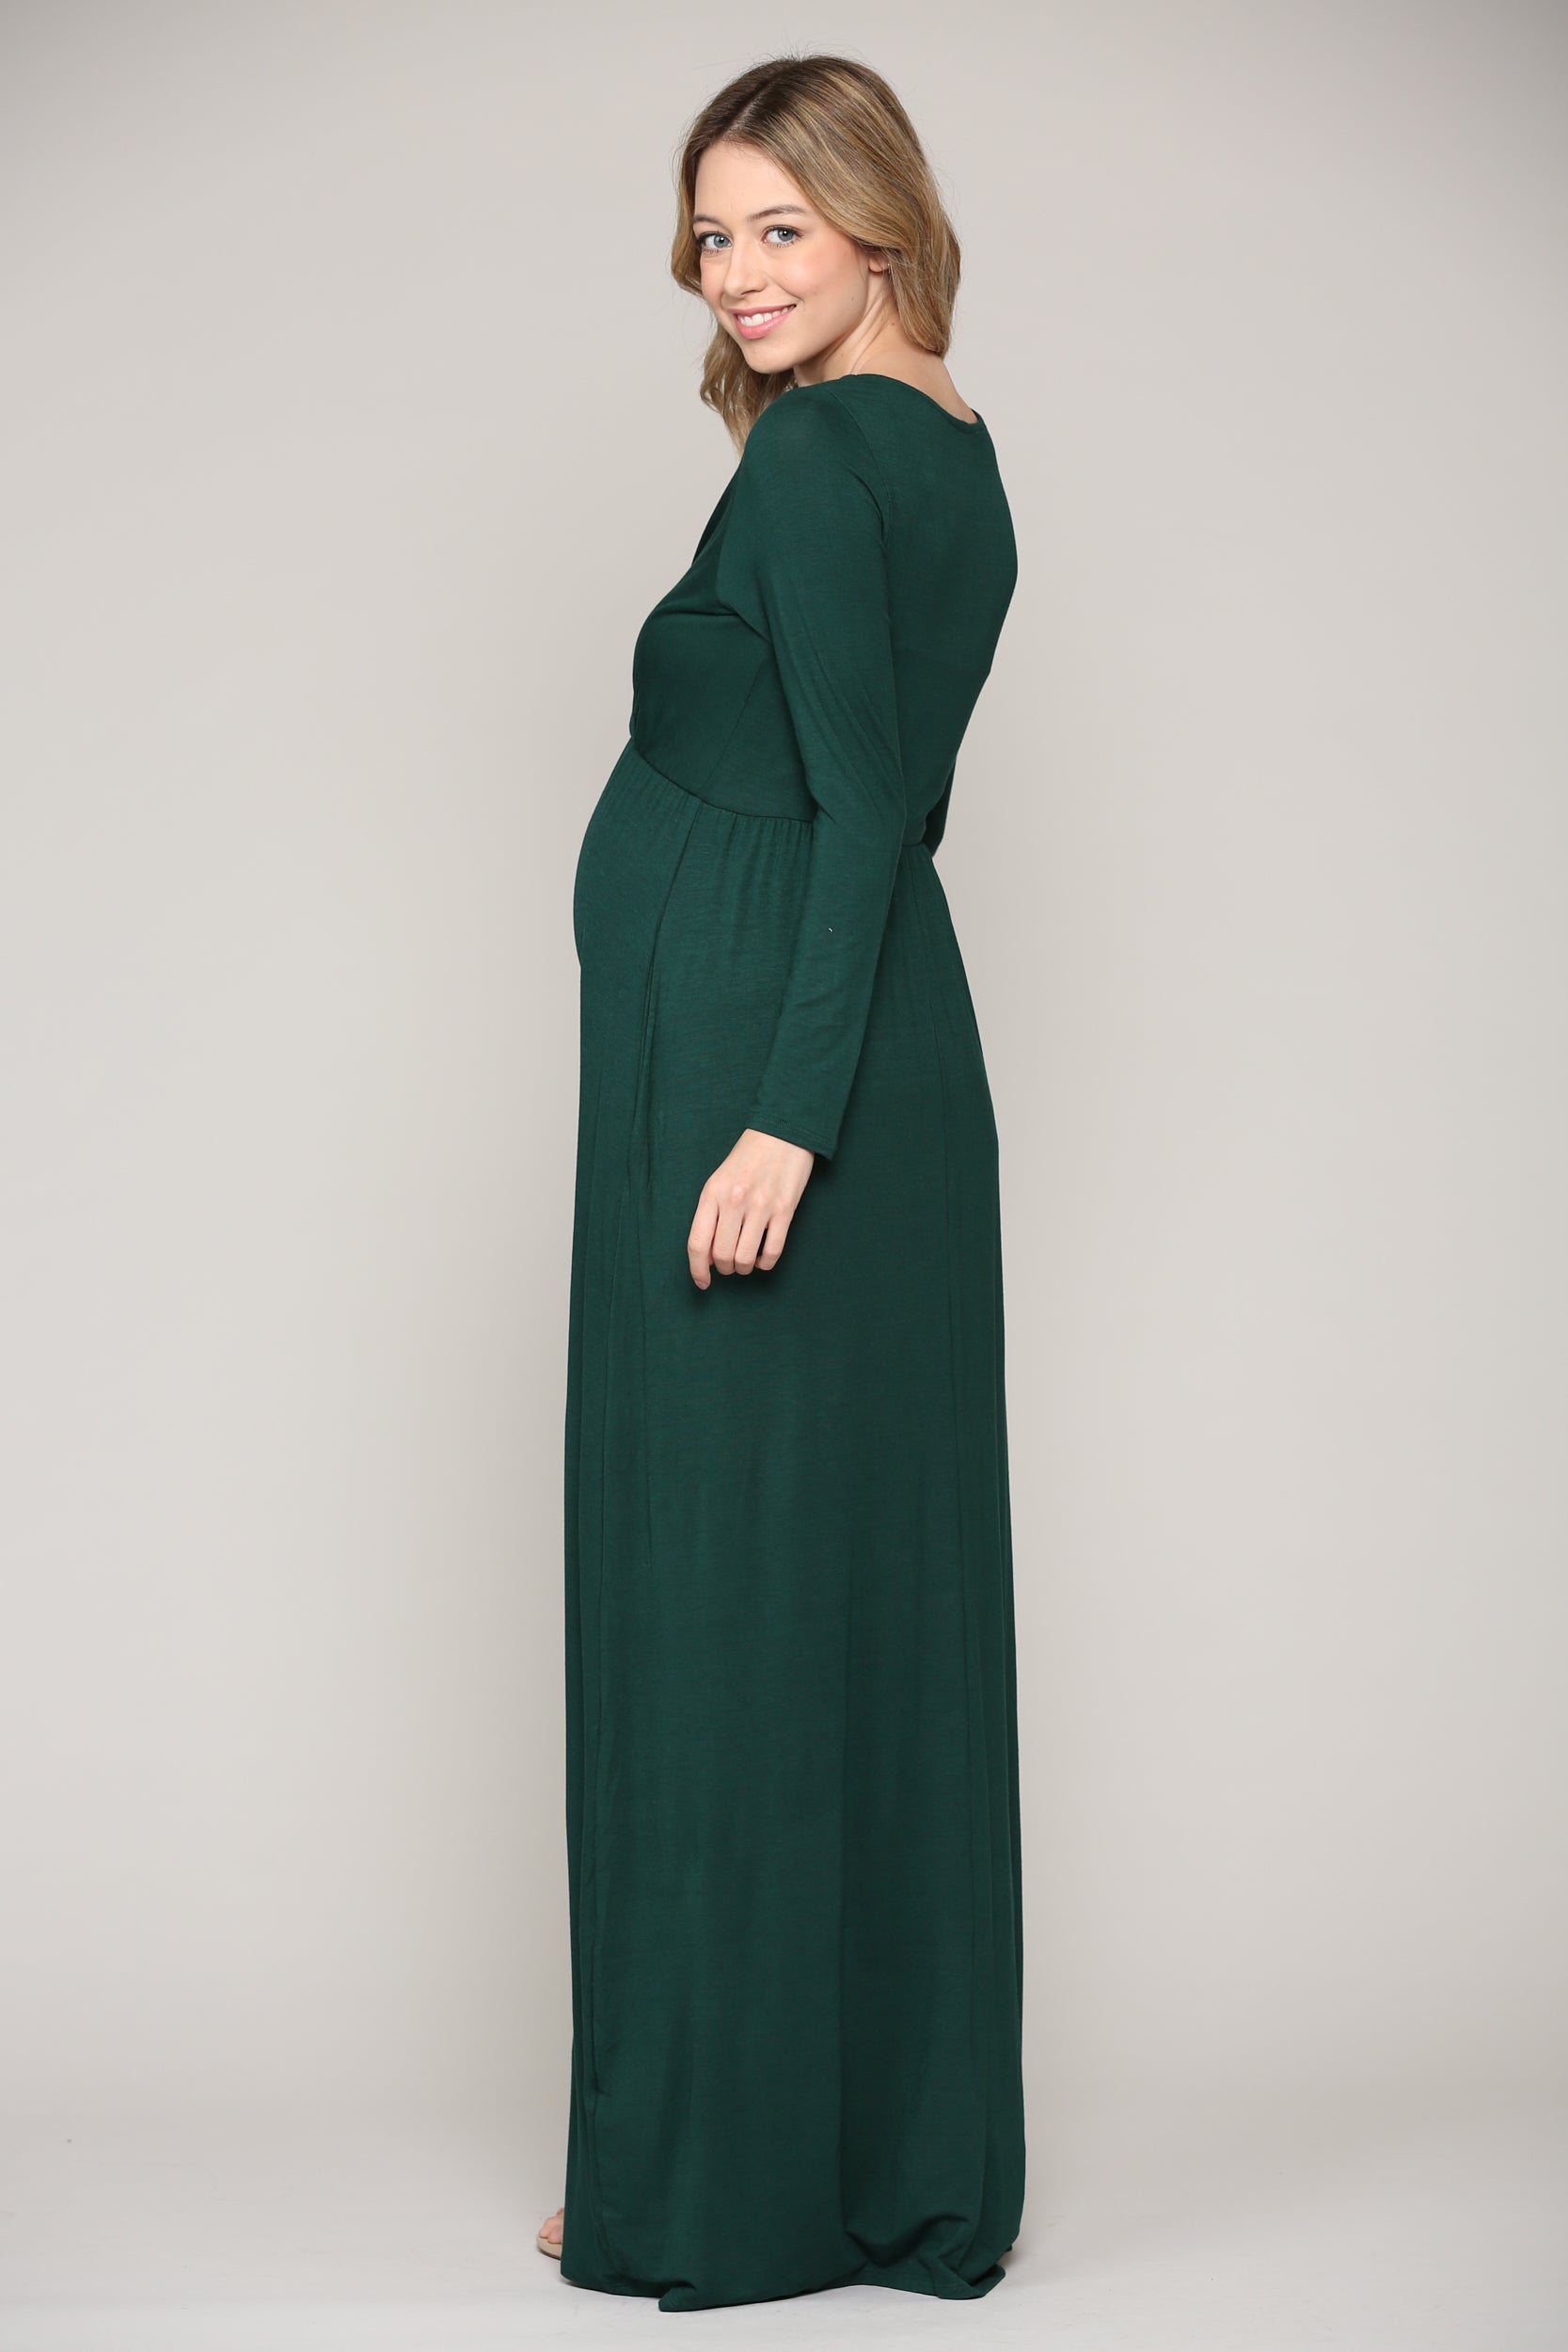 Long Sleeve Maternity/Nursing Maxi Dress